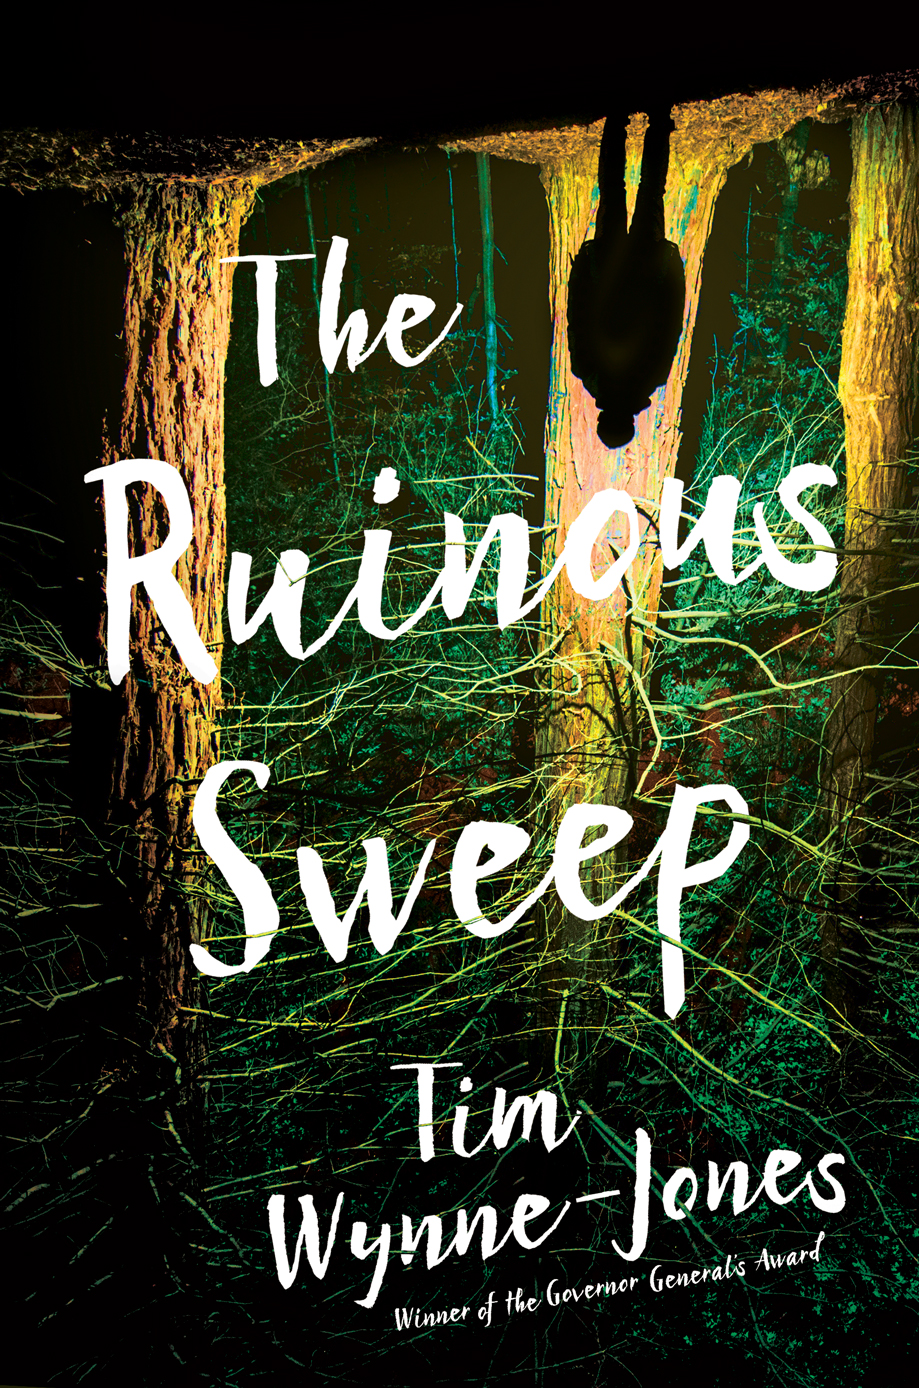 Author Wym >> Cynsations Survivors Tim Wynne Jones On Thriving As A Long Time